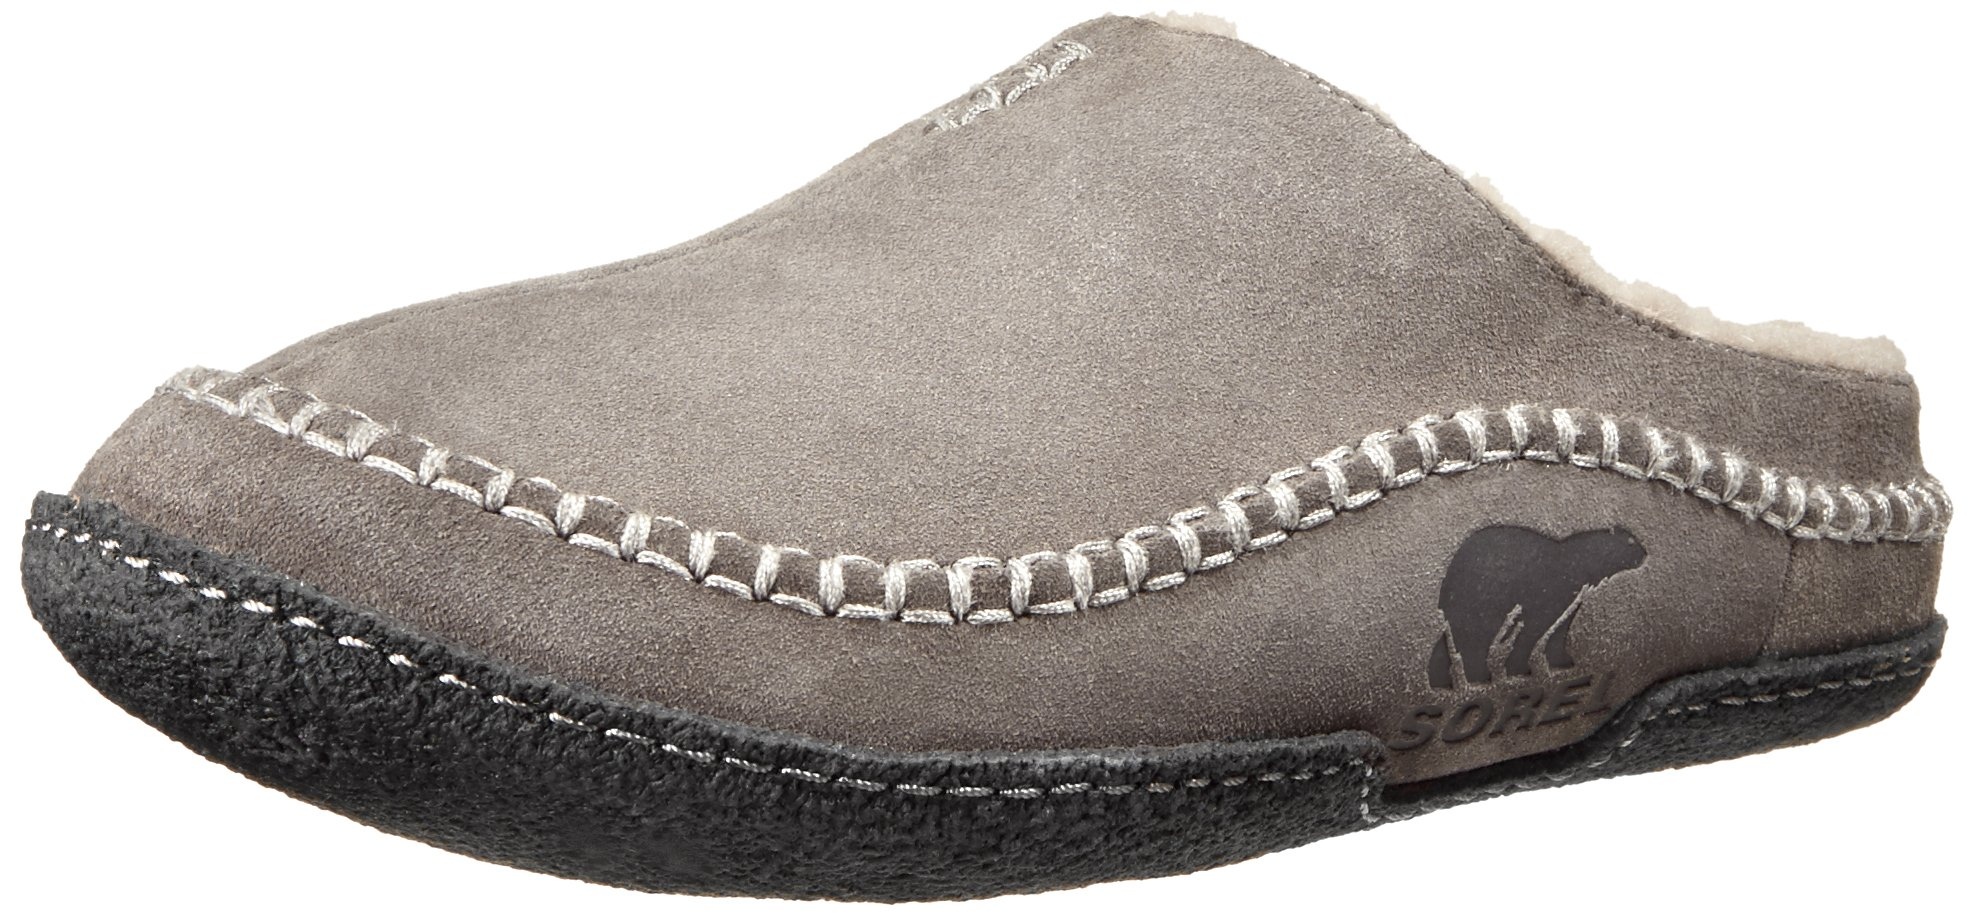 Sorel Men's Falcon Ridge Slipper,Shale,10 M US